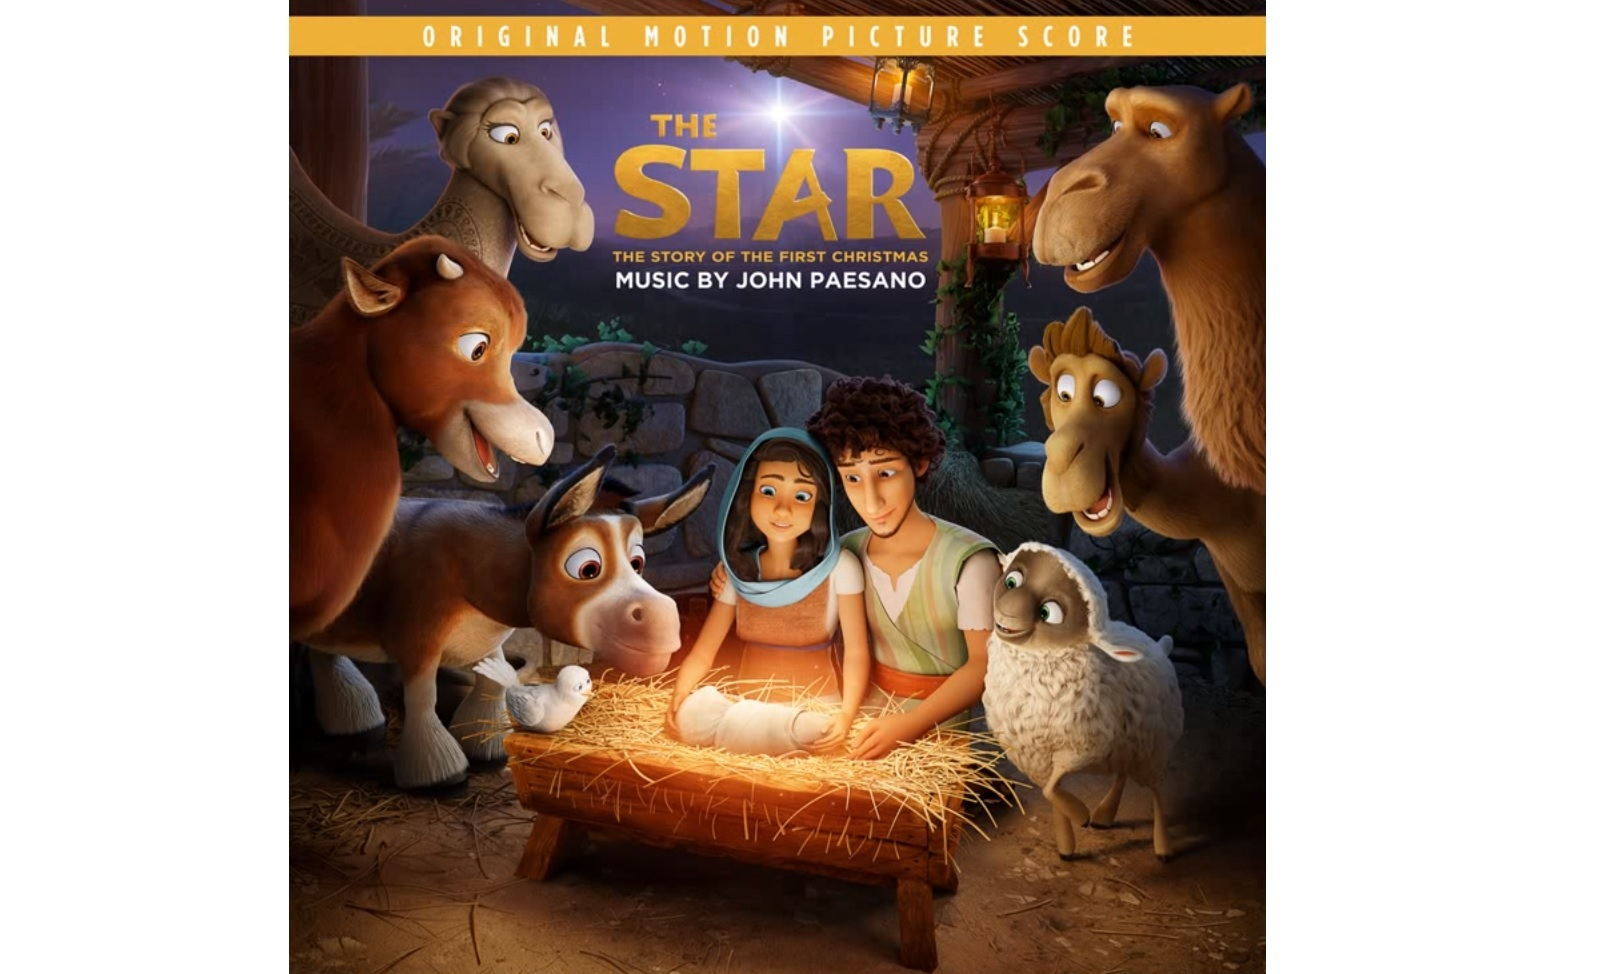 La Estrella de Belén (The Star) – Soundtrack, Tráiler